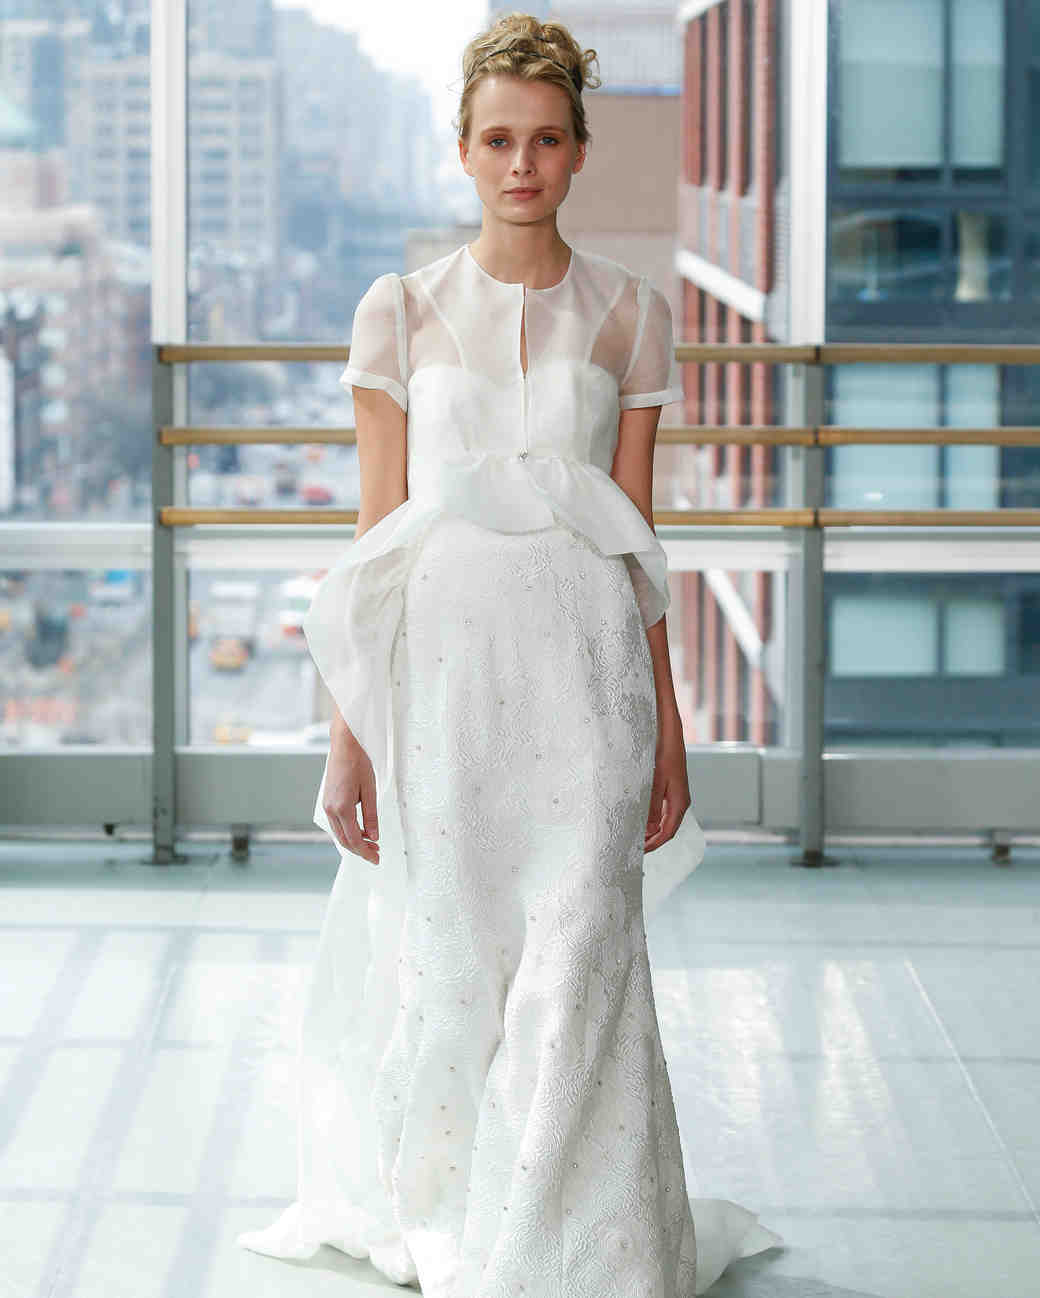 gracy accad wedding dress spring 2019 short sleeves sheer jacket a-line